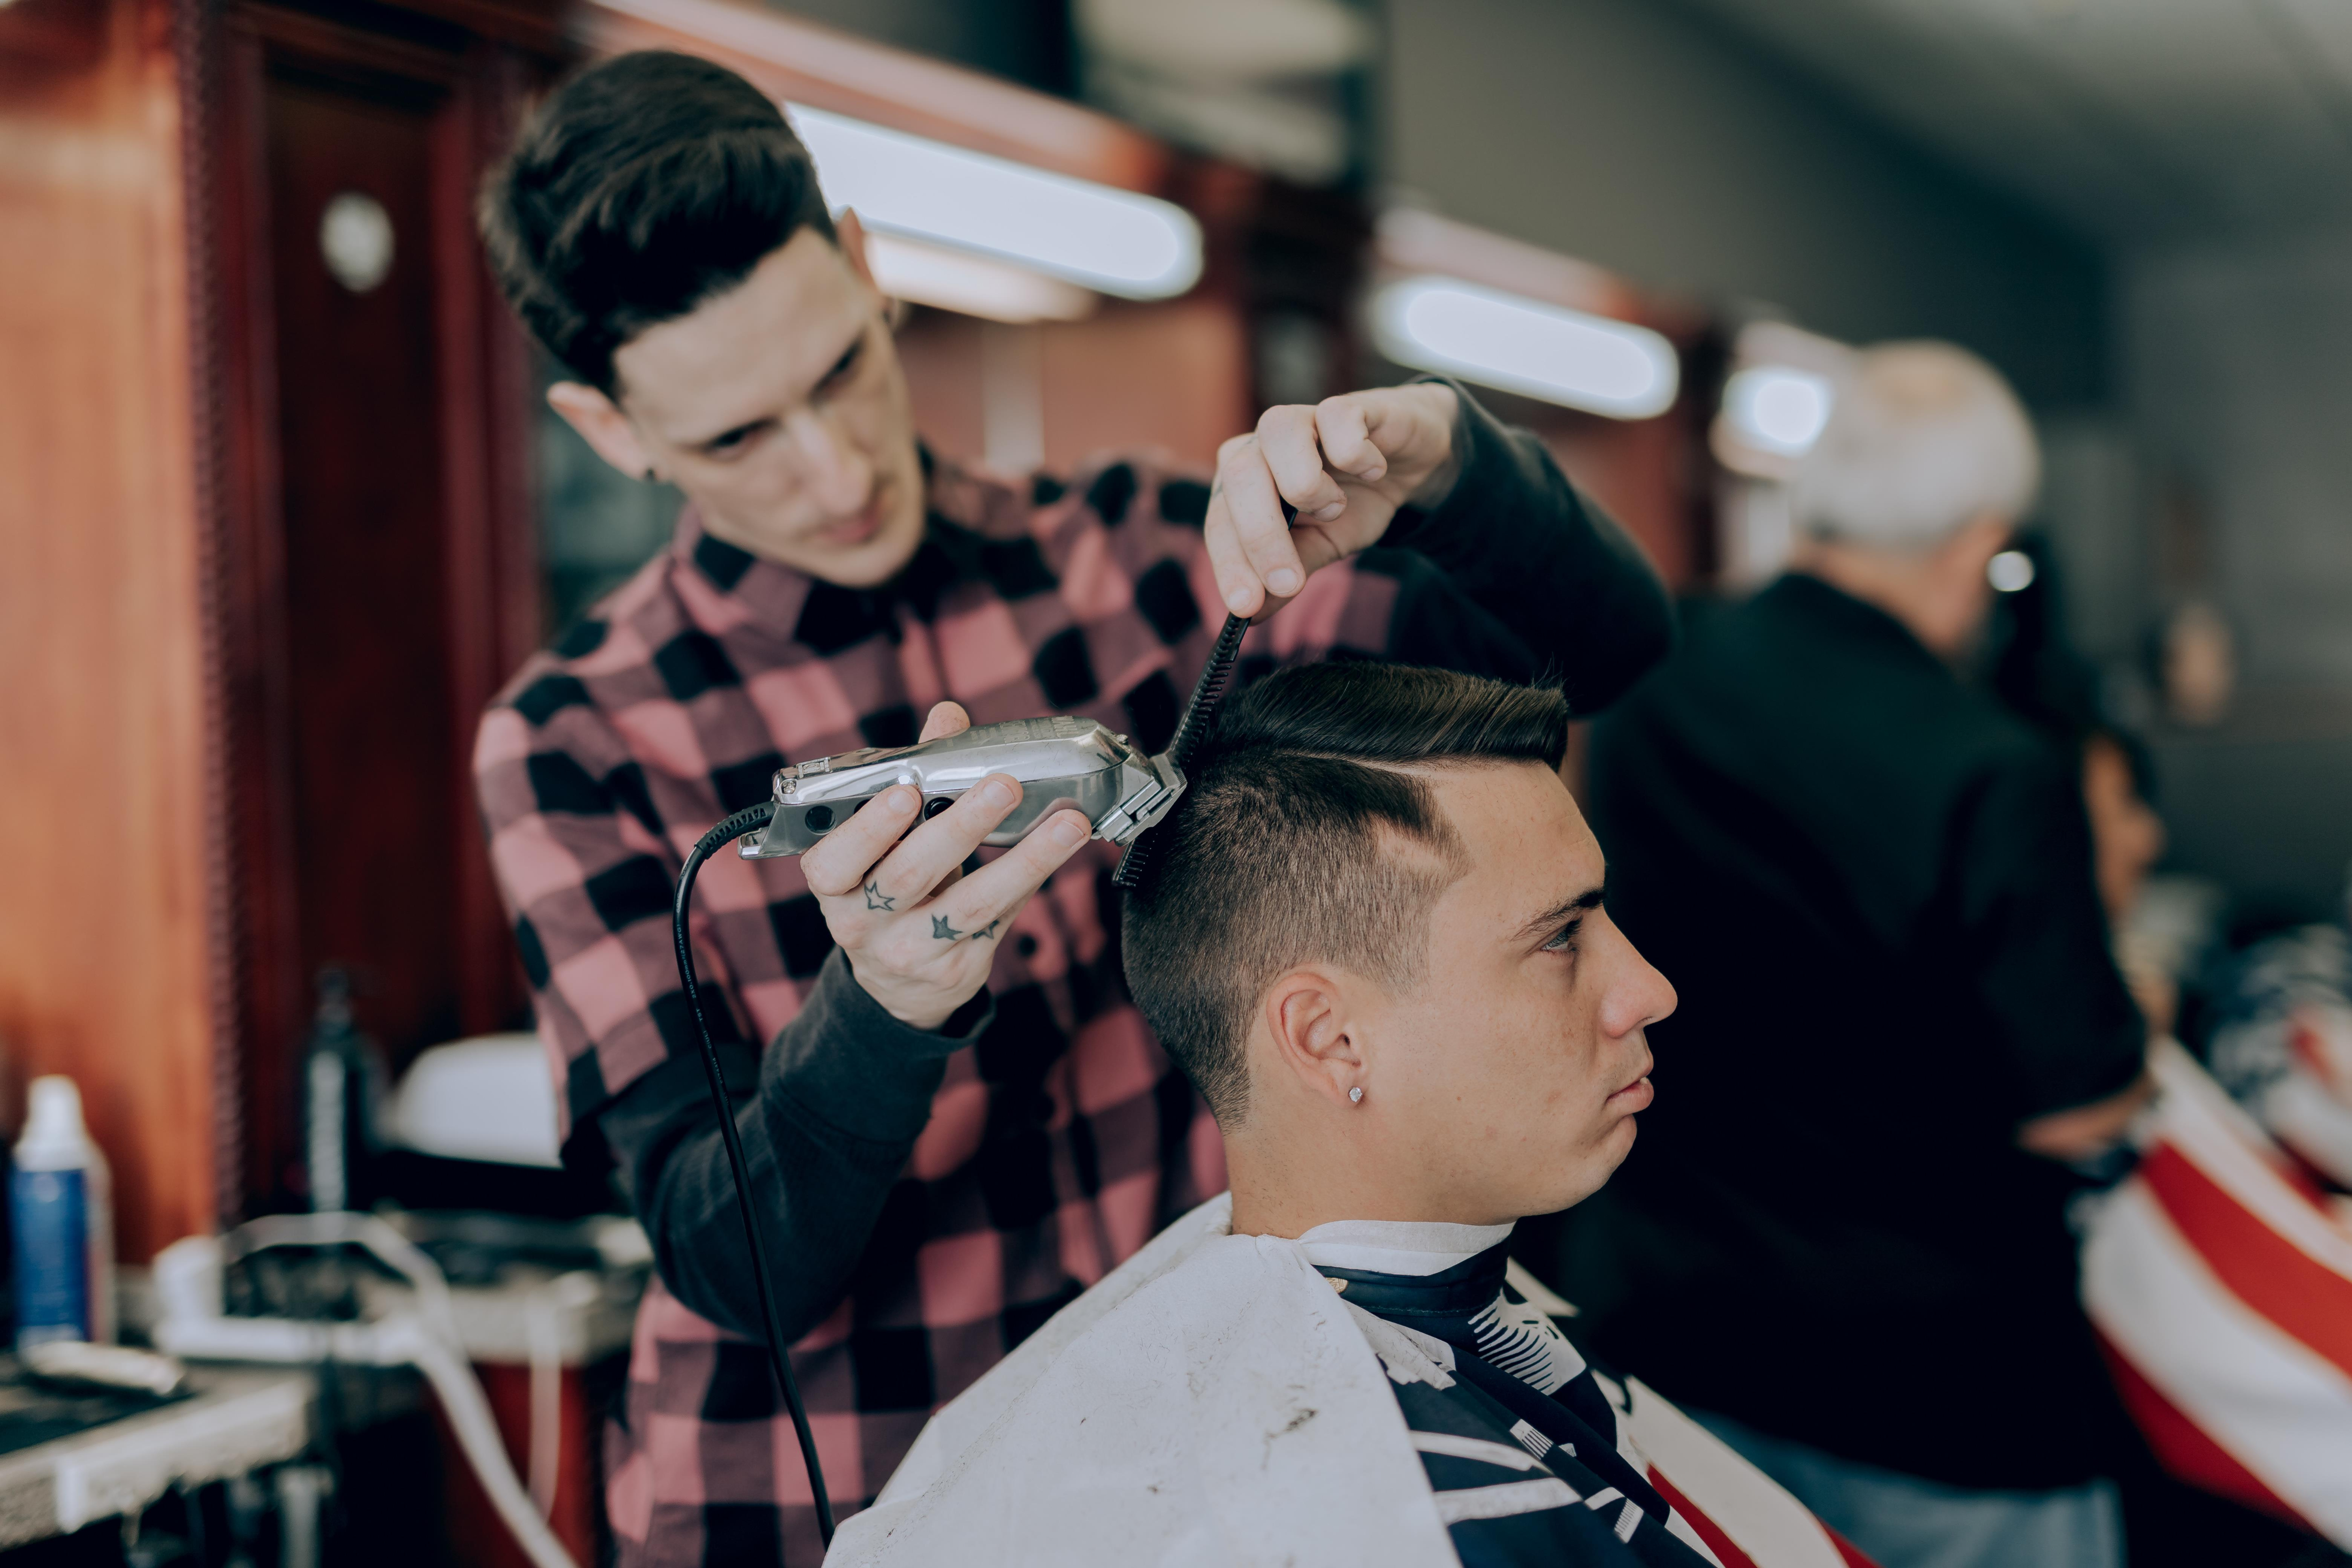 haircut and a shave the modern barbershop amp shave in az 3848 | ouzFo temp 38407911 82411 $2018 03 07 18 08 07 3848